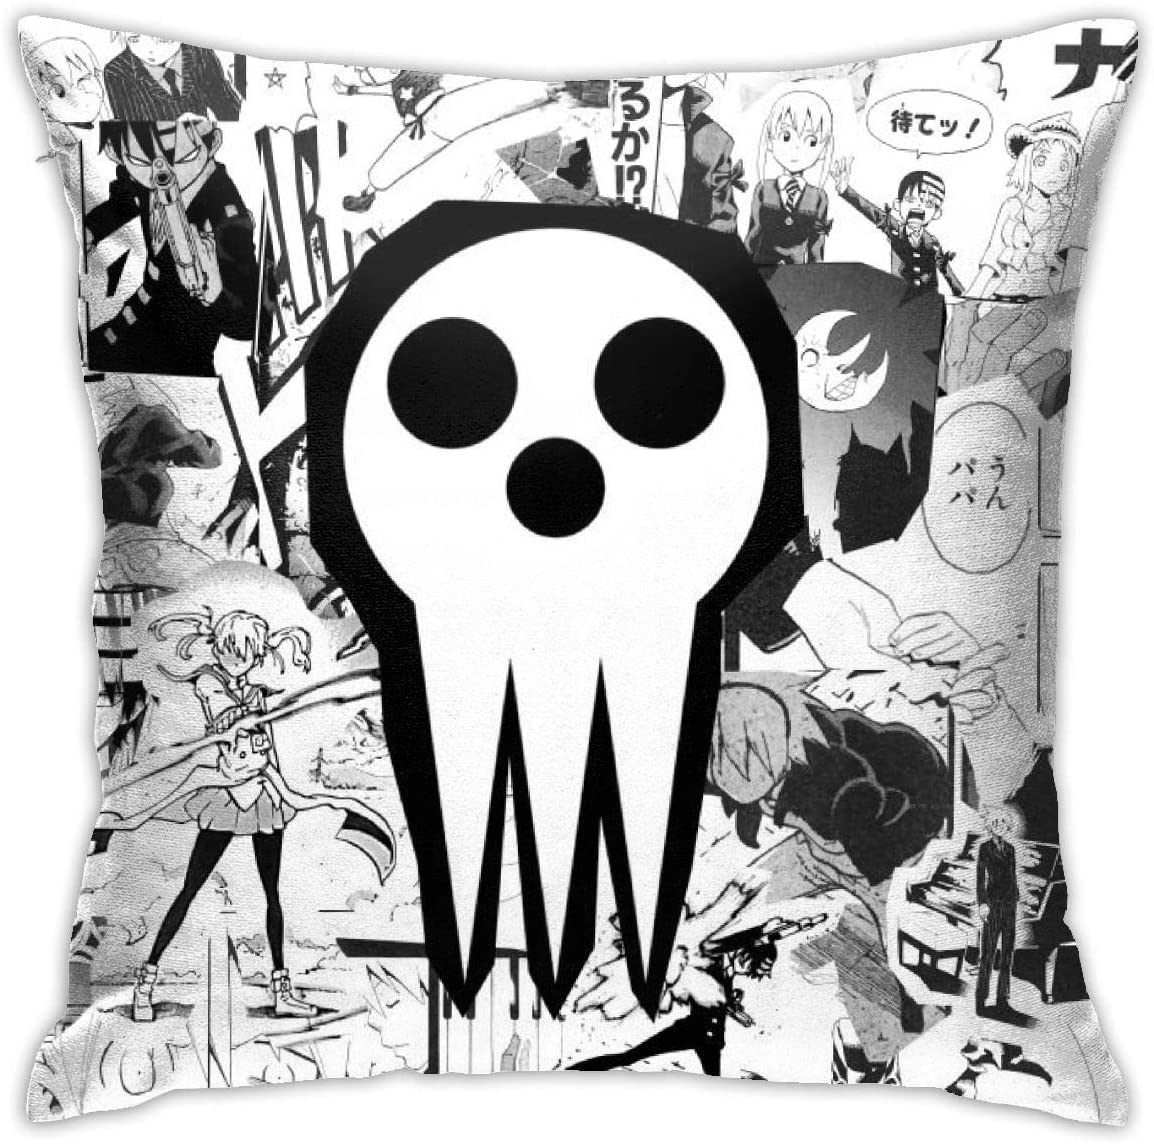 NanZYang Soul Eater Poster Pillows Cases Covers Decorative Home Sofa Bed Standard Square Throw Pillowcase Protectors Zipper 18x18 Inches